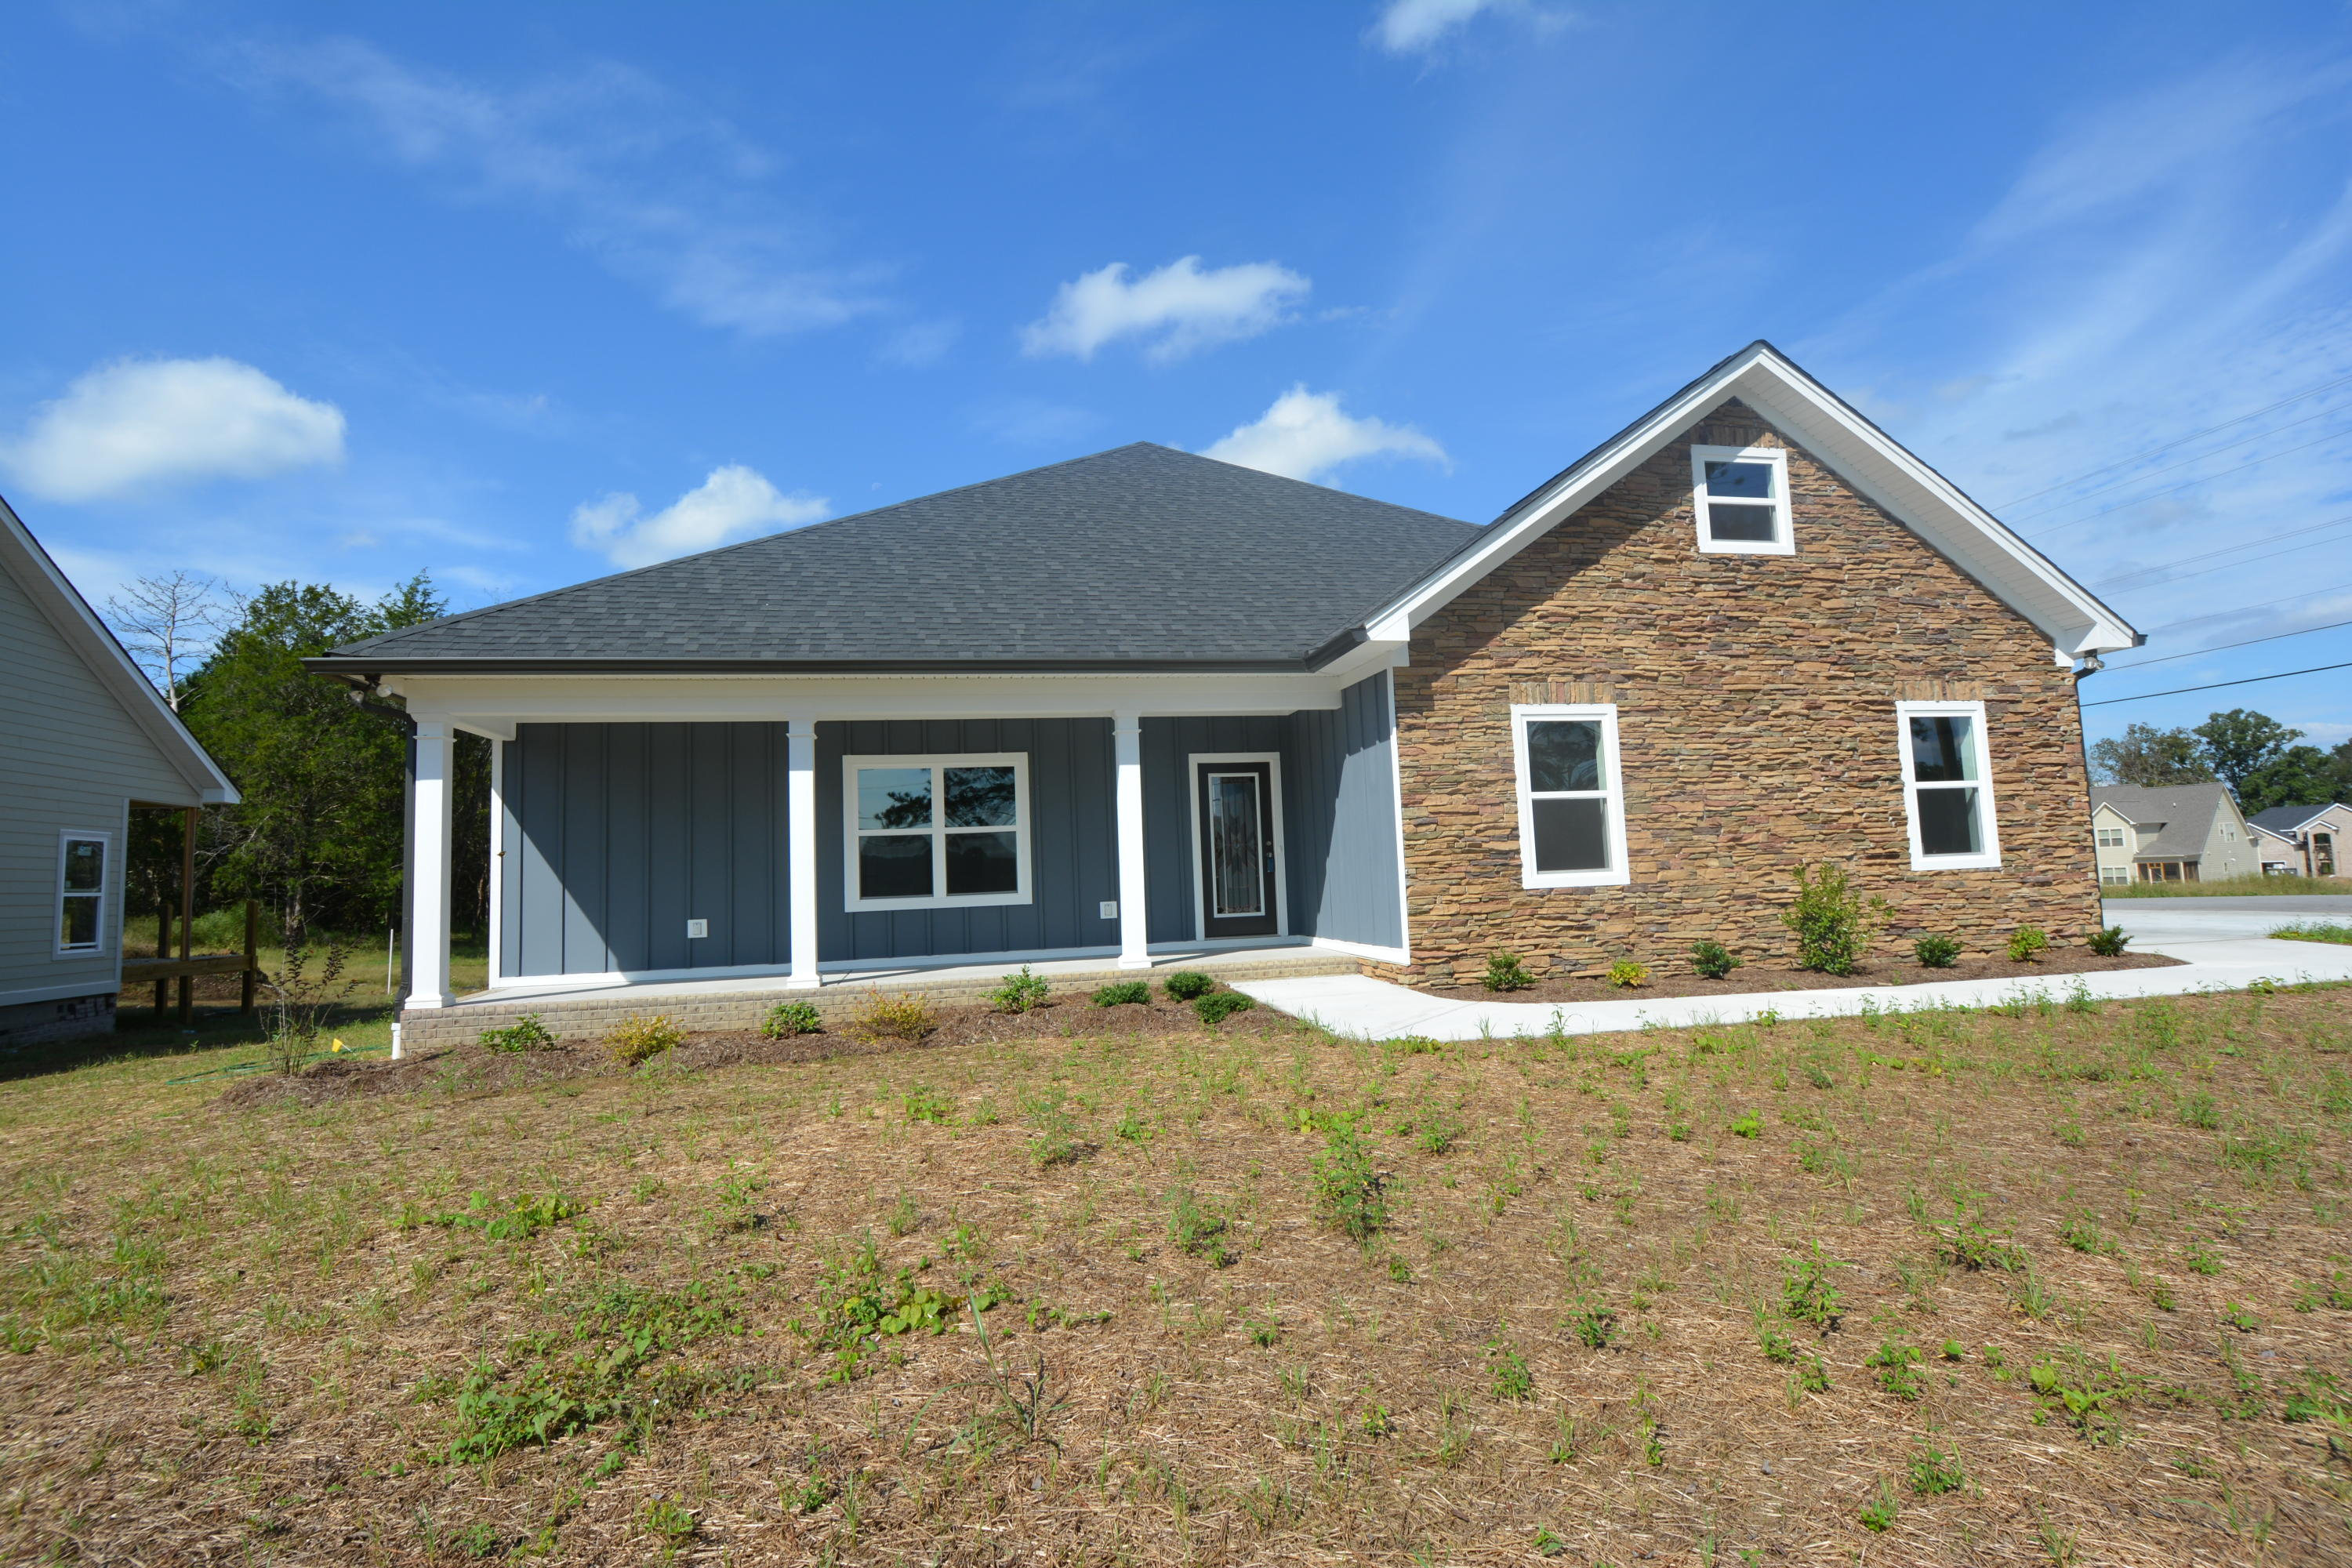 2195 Nw Freewill Rd, Cleveland, TN 37312